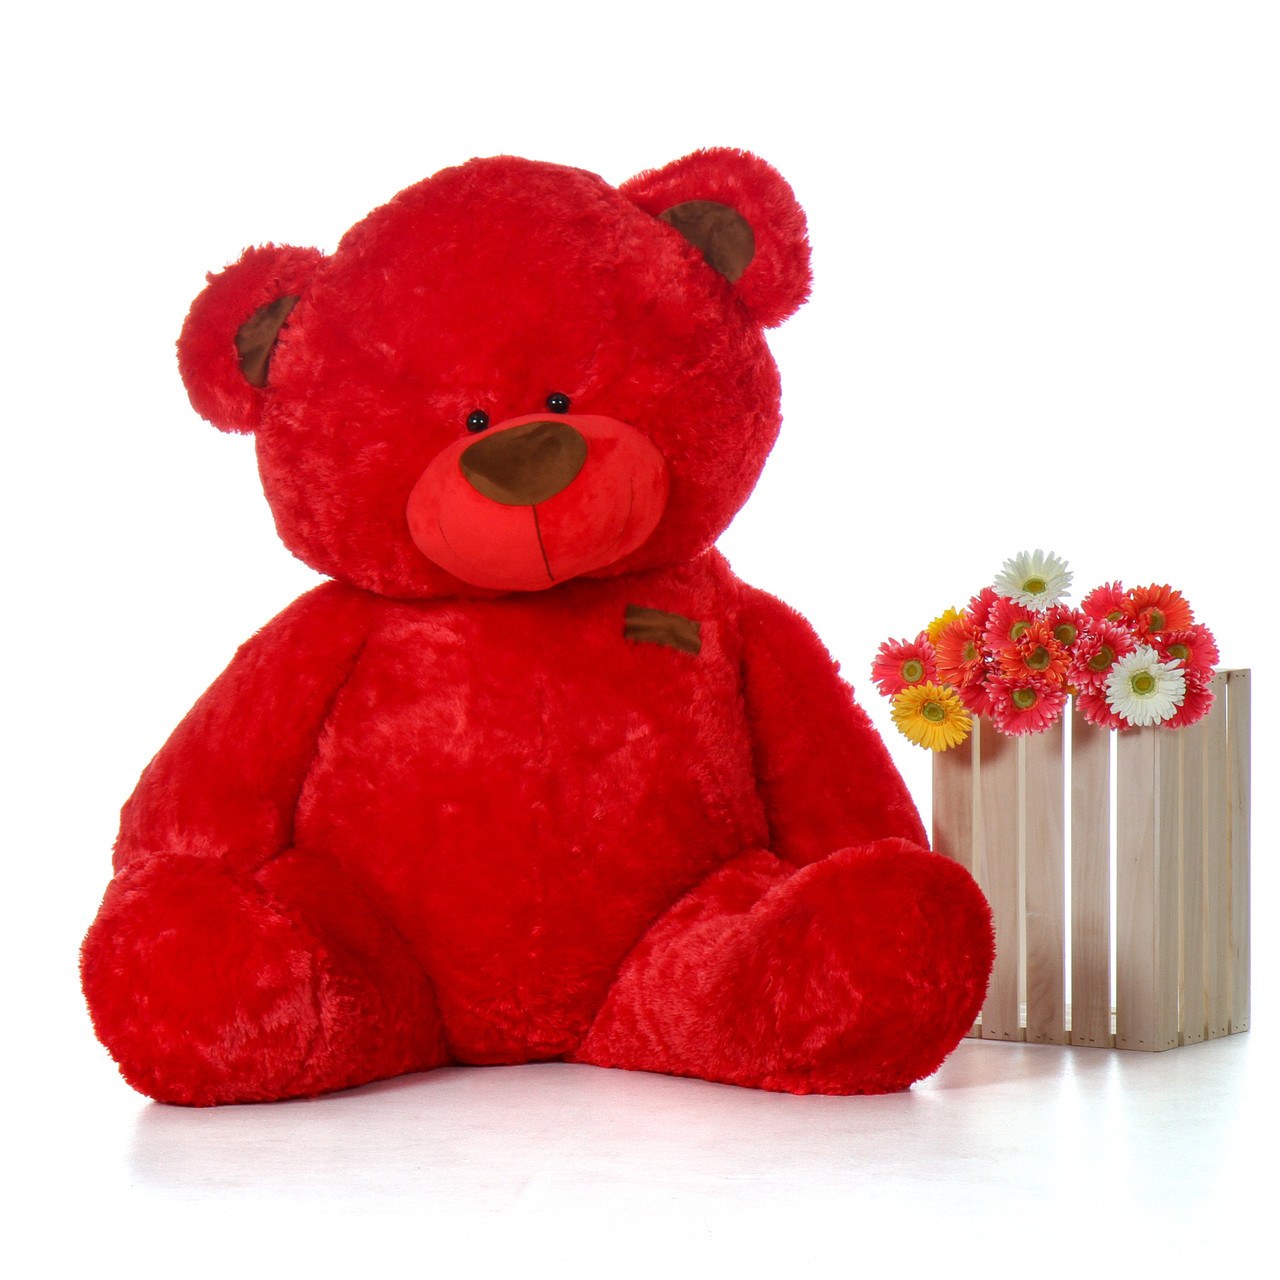 Premium Quality Giant Red Teddy Bear